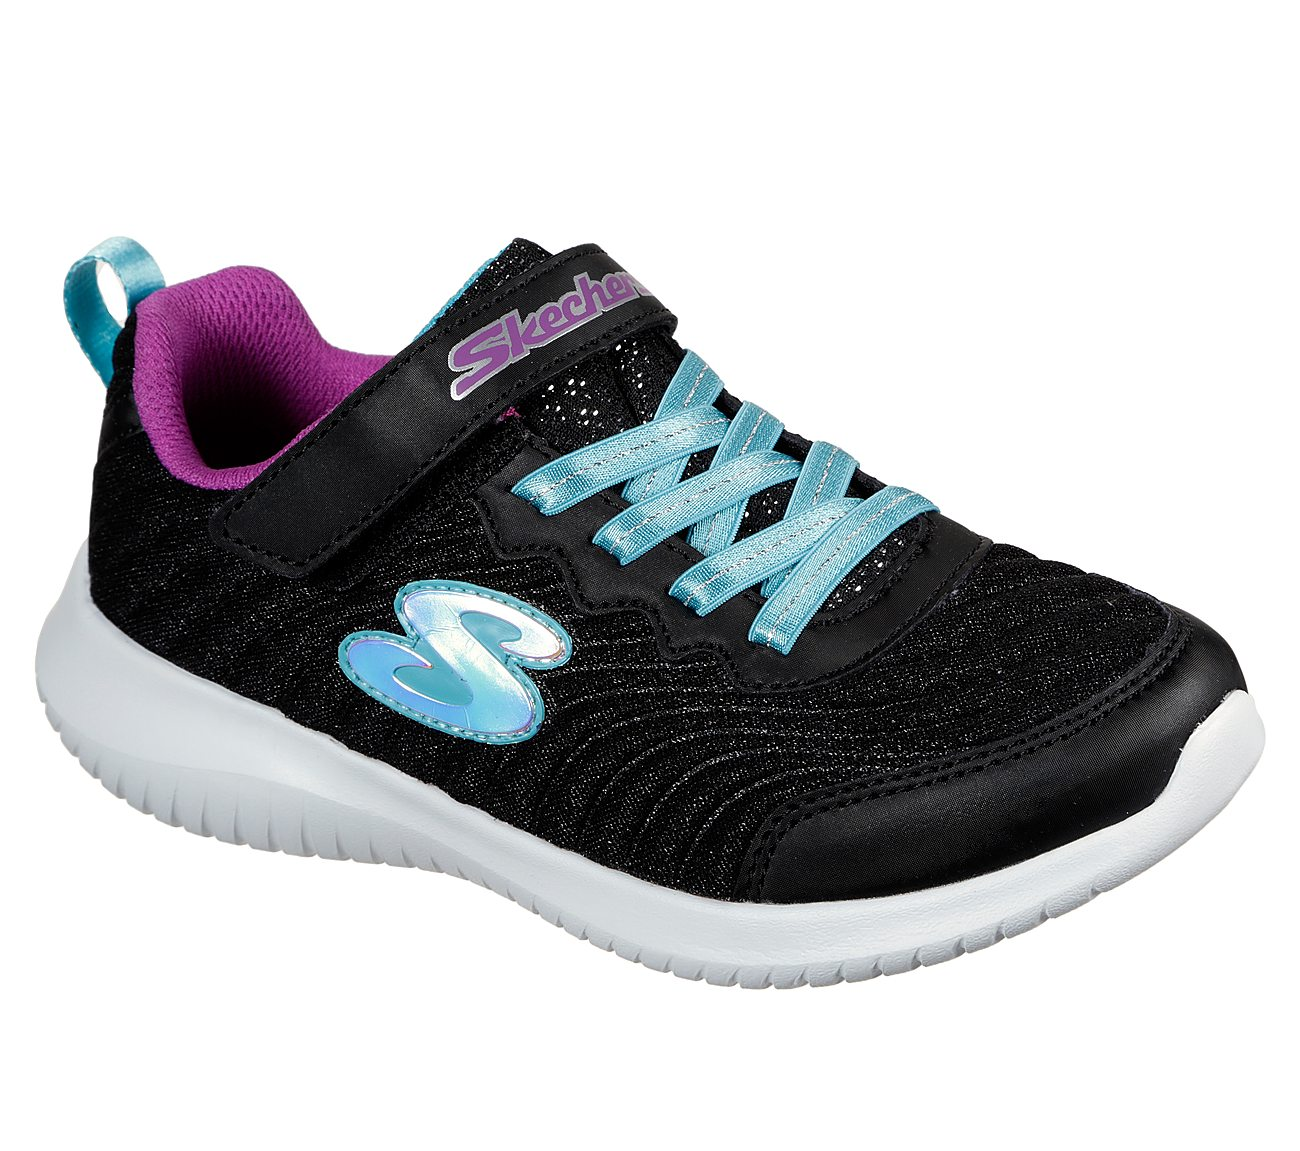 Details about Skechers Go Flex Athletic Children Slip on Girls Girl Ballerina